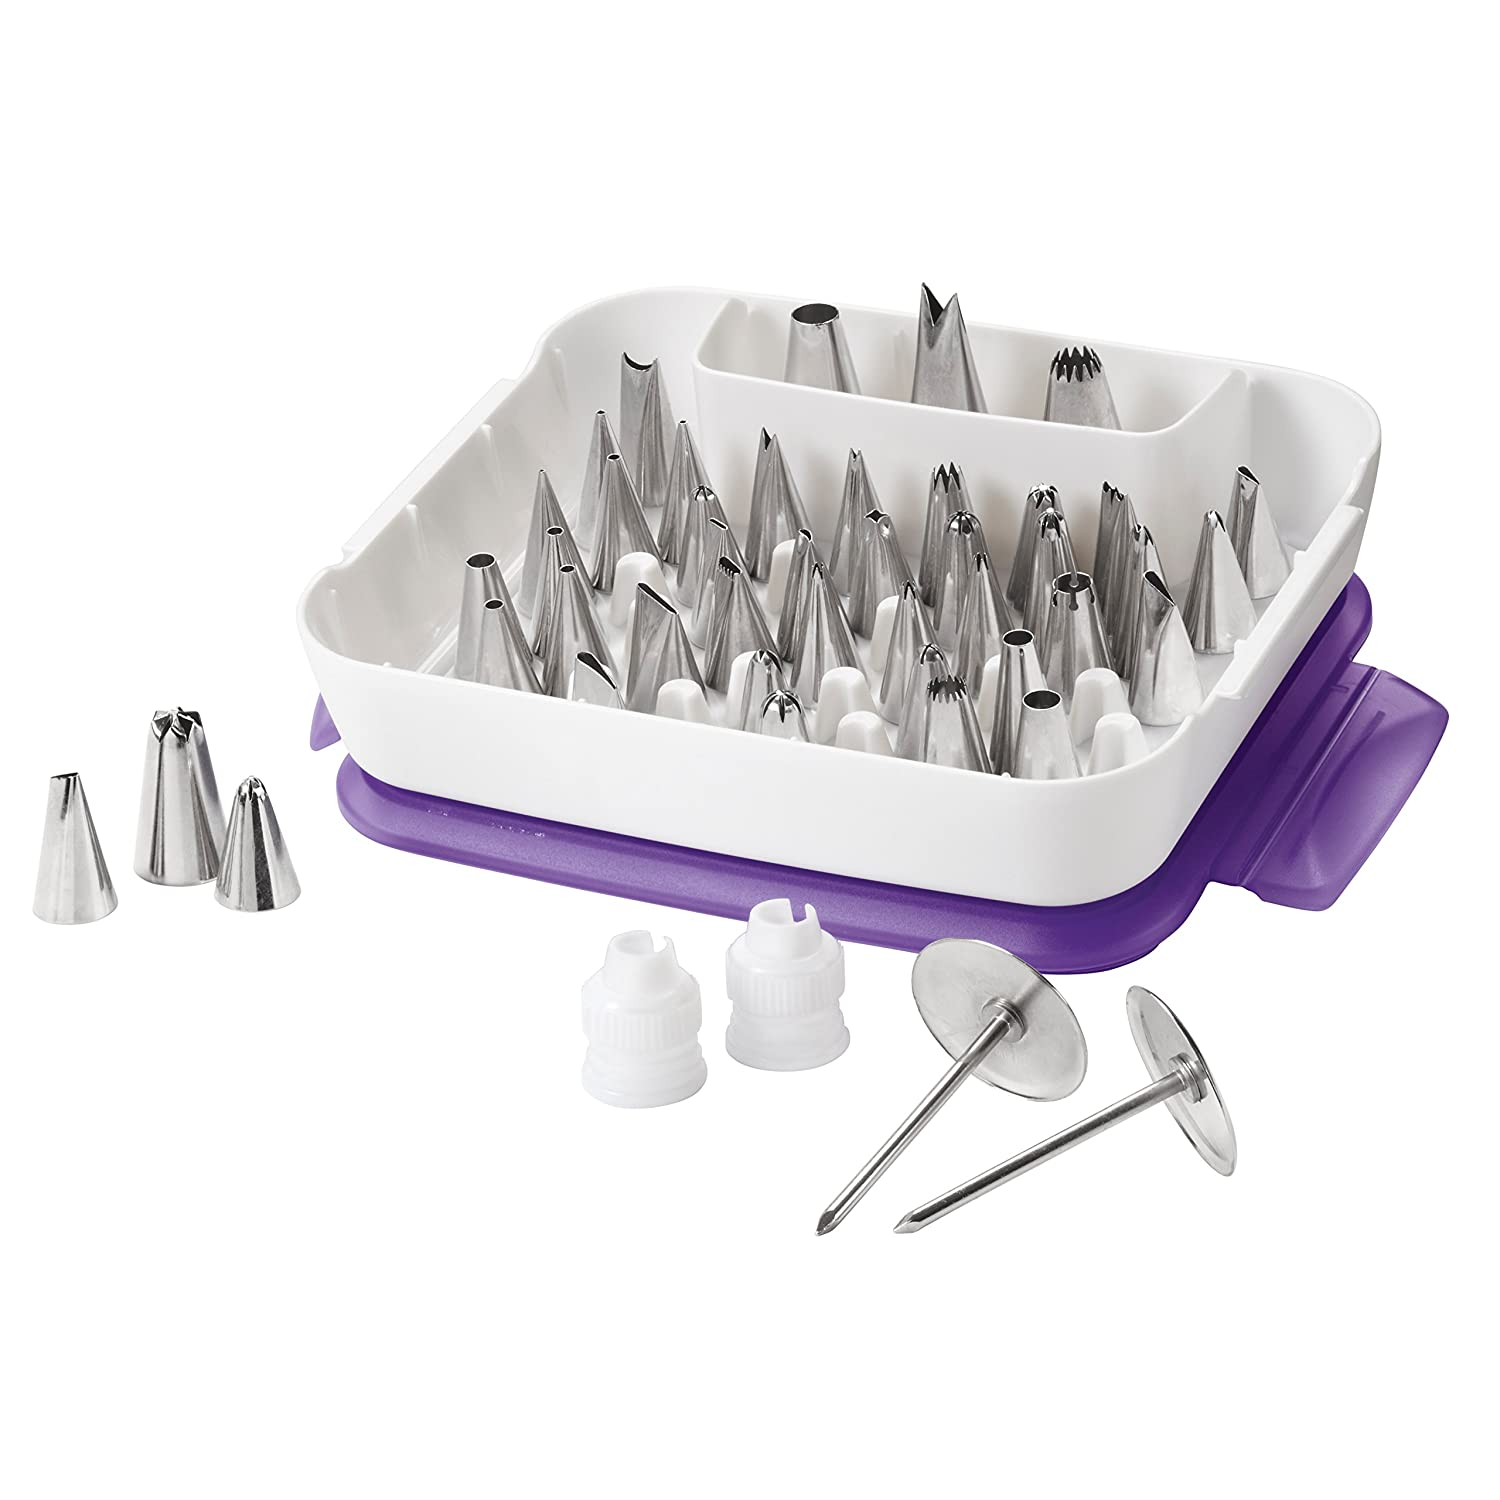 Wilton Master Decorating Tip Set, 55-Piece decorating tips, Cake Decorating  Supplies